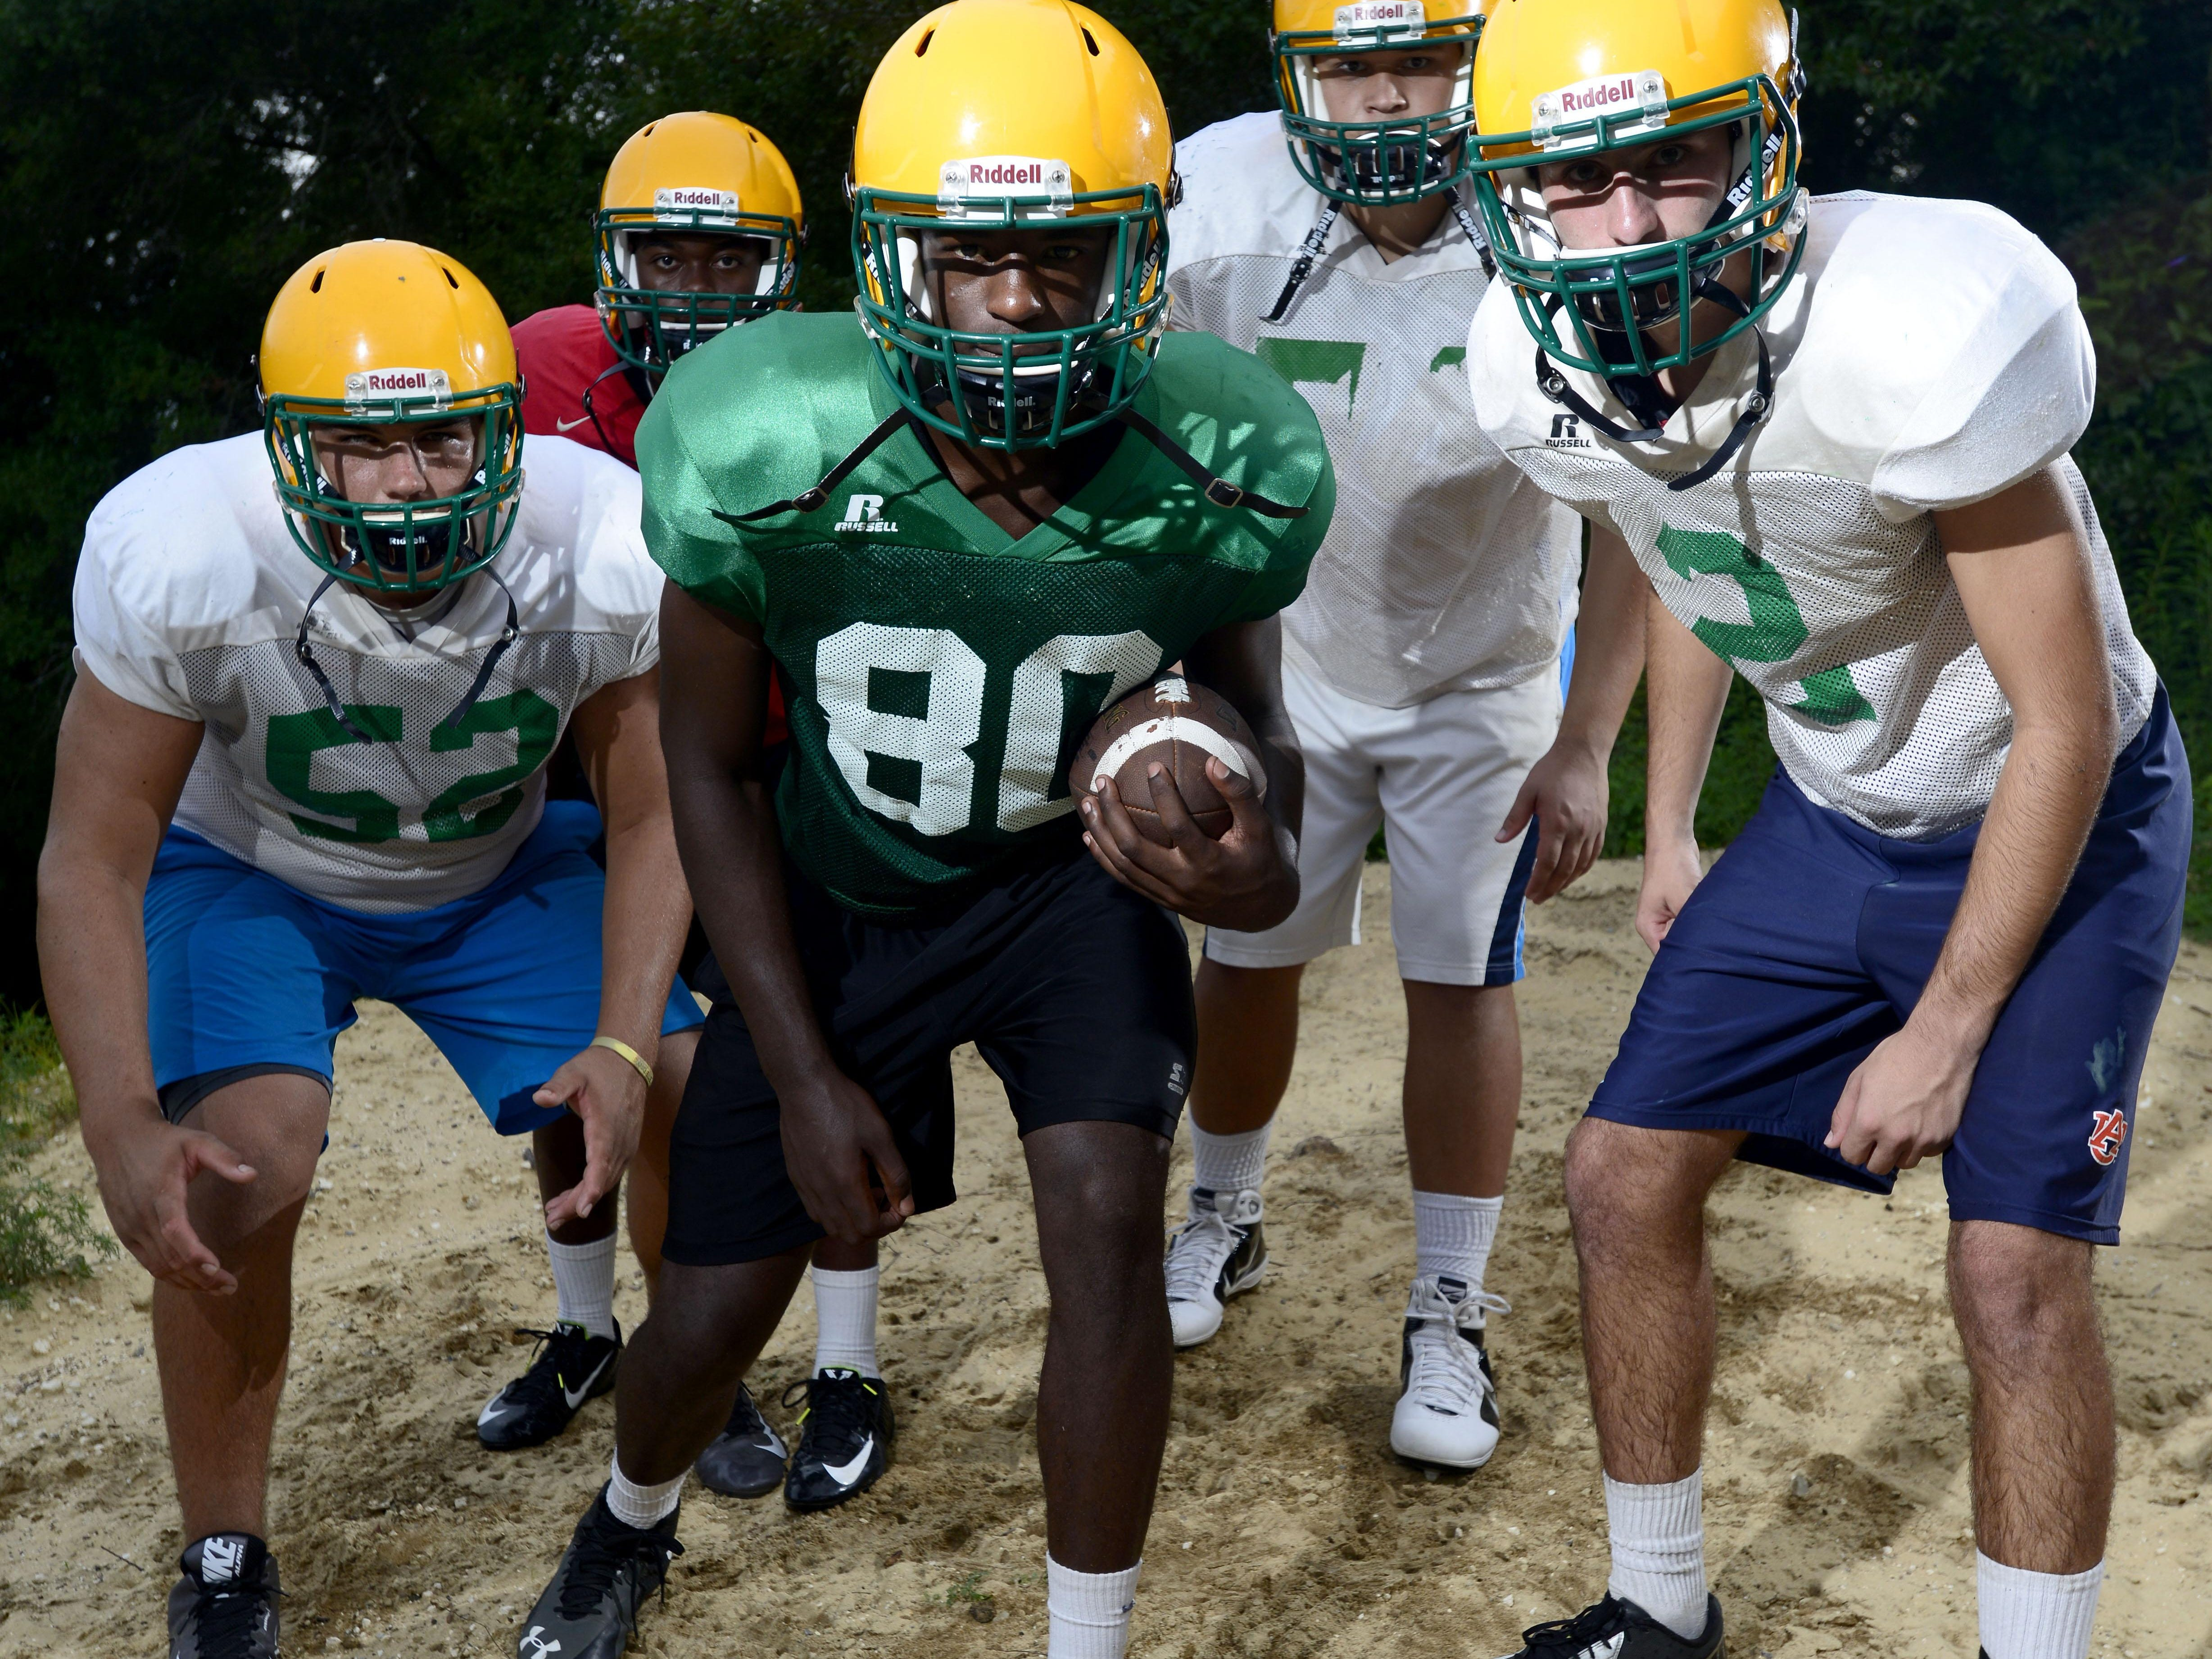 Catholic High School players are , from left, Blake Brazwell, Zkhari Blocker, Darrien Brown, Ethan Watson and A.J. Yates.